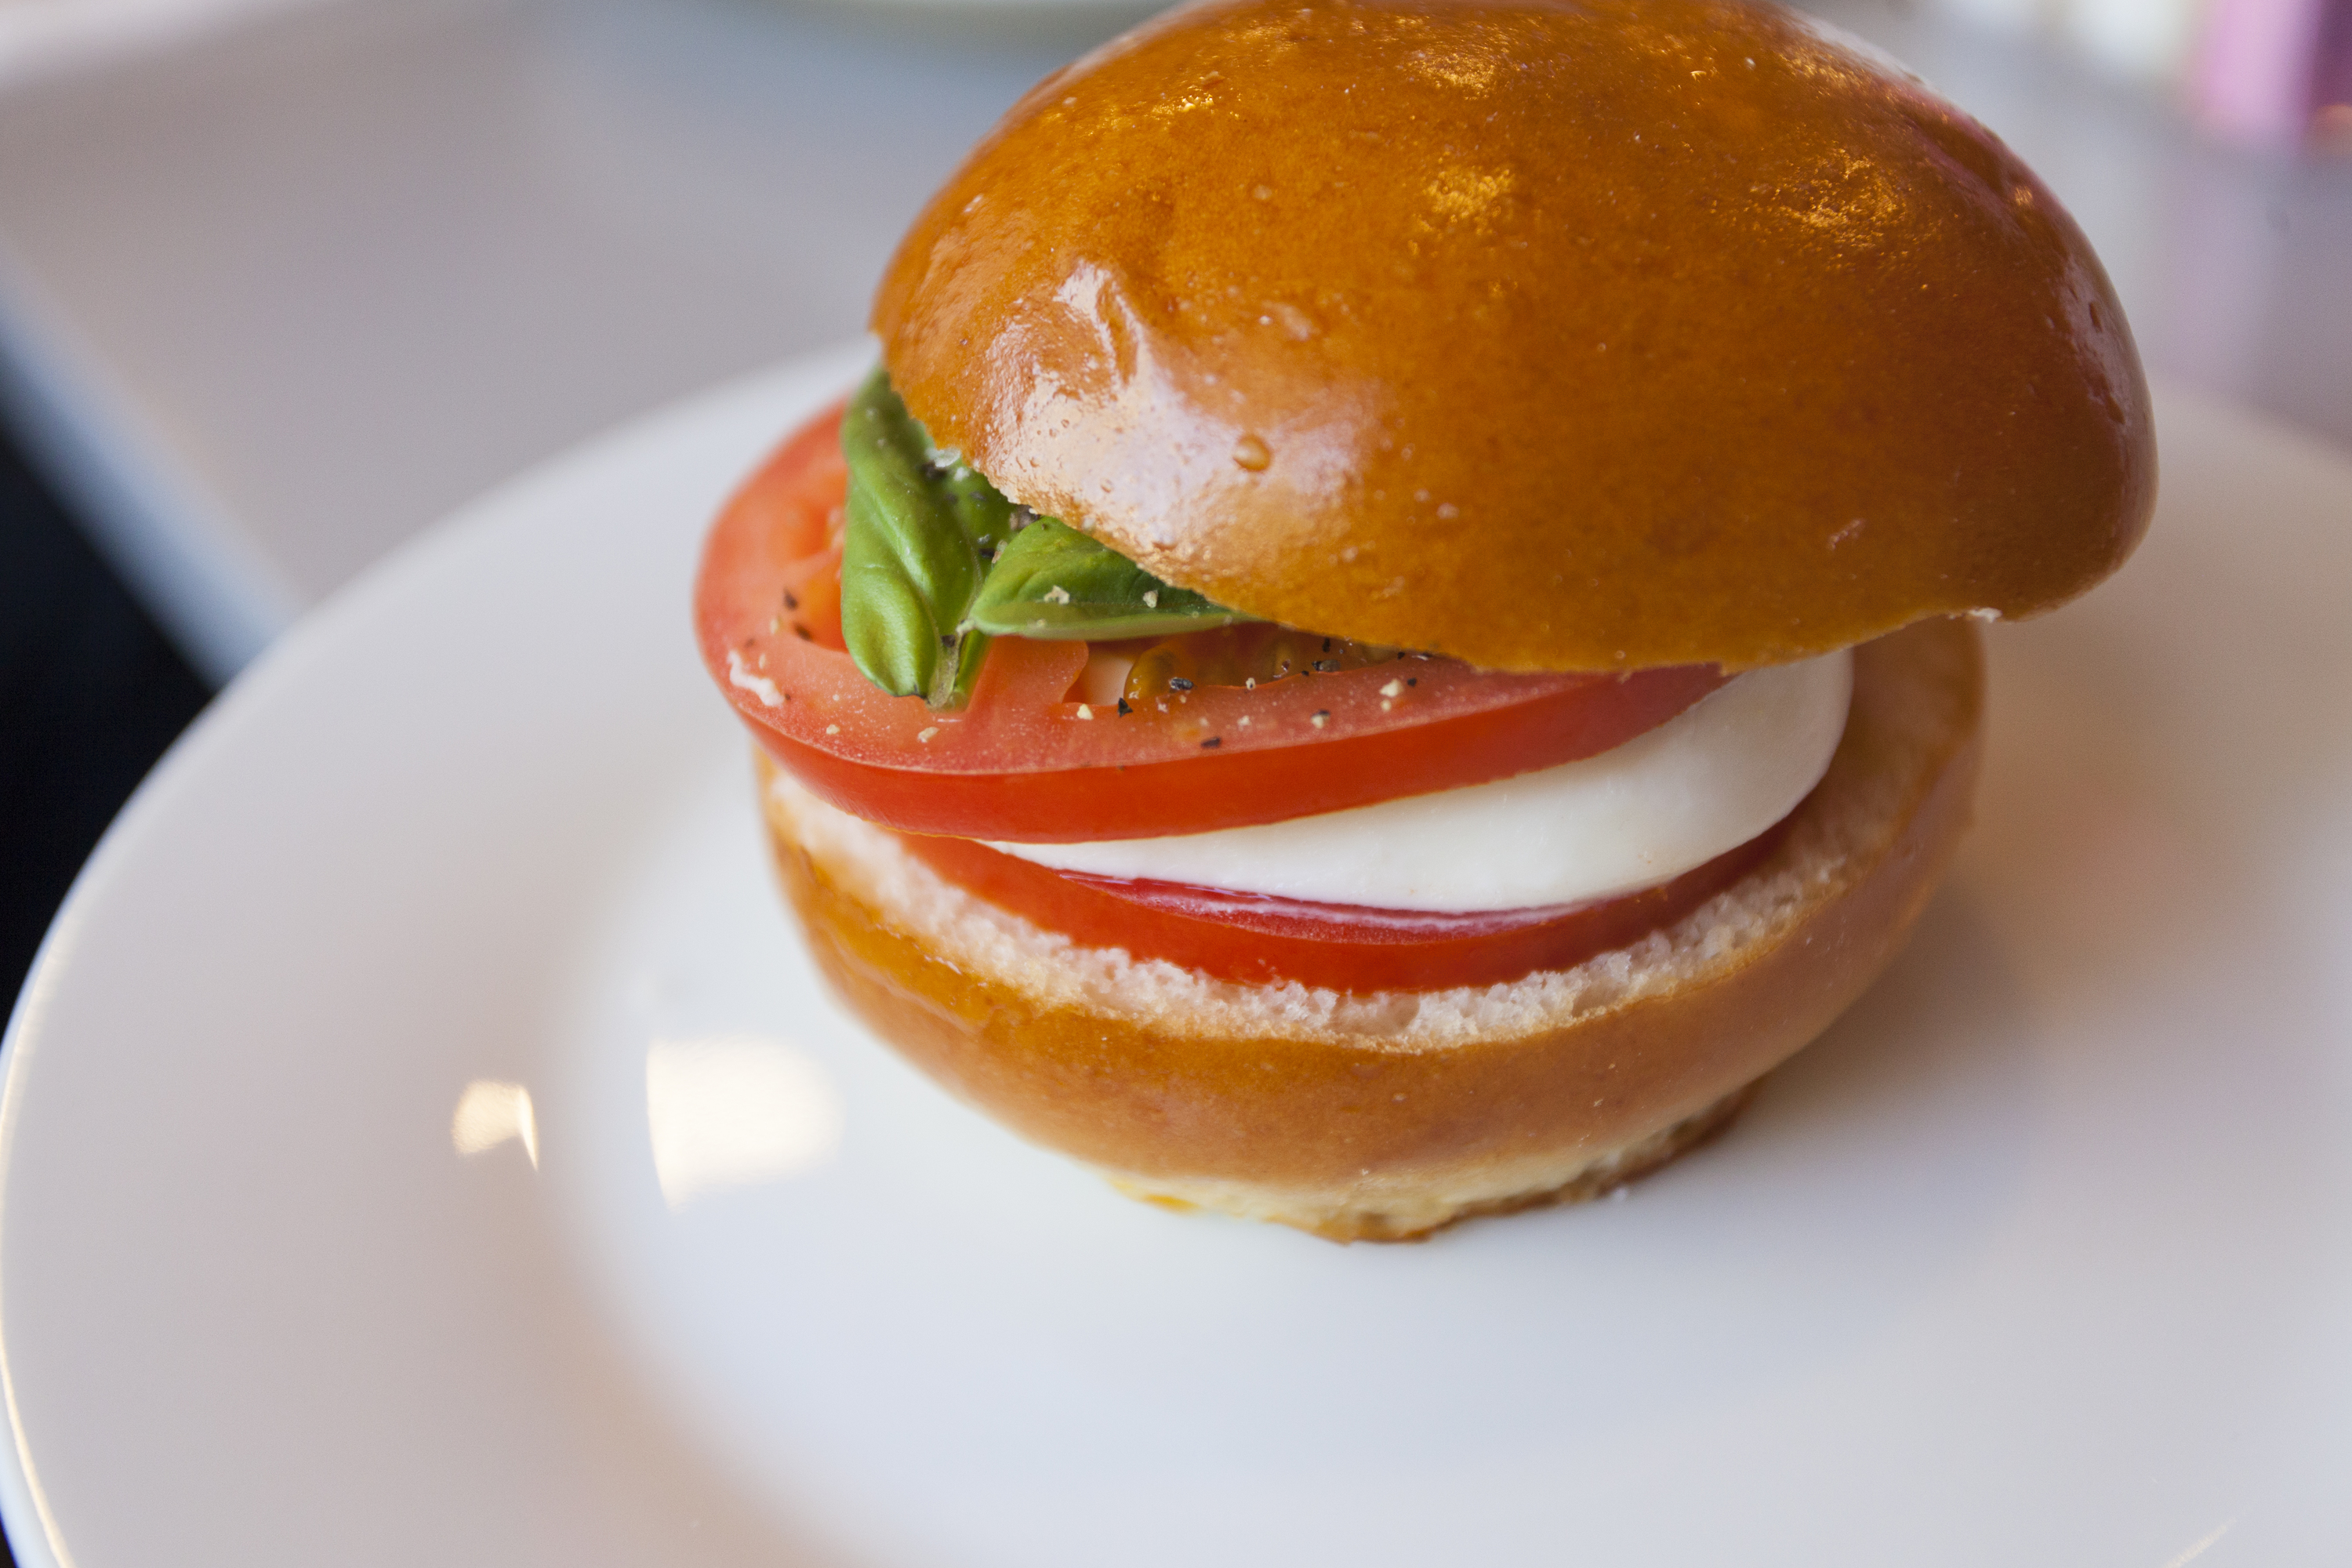 Edo Little Bites caprese sandwich in Pacific Palisades Village